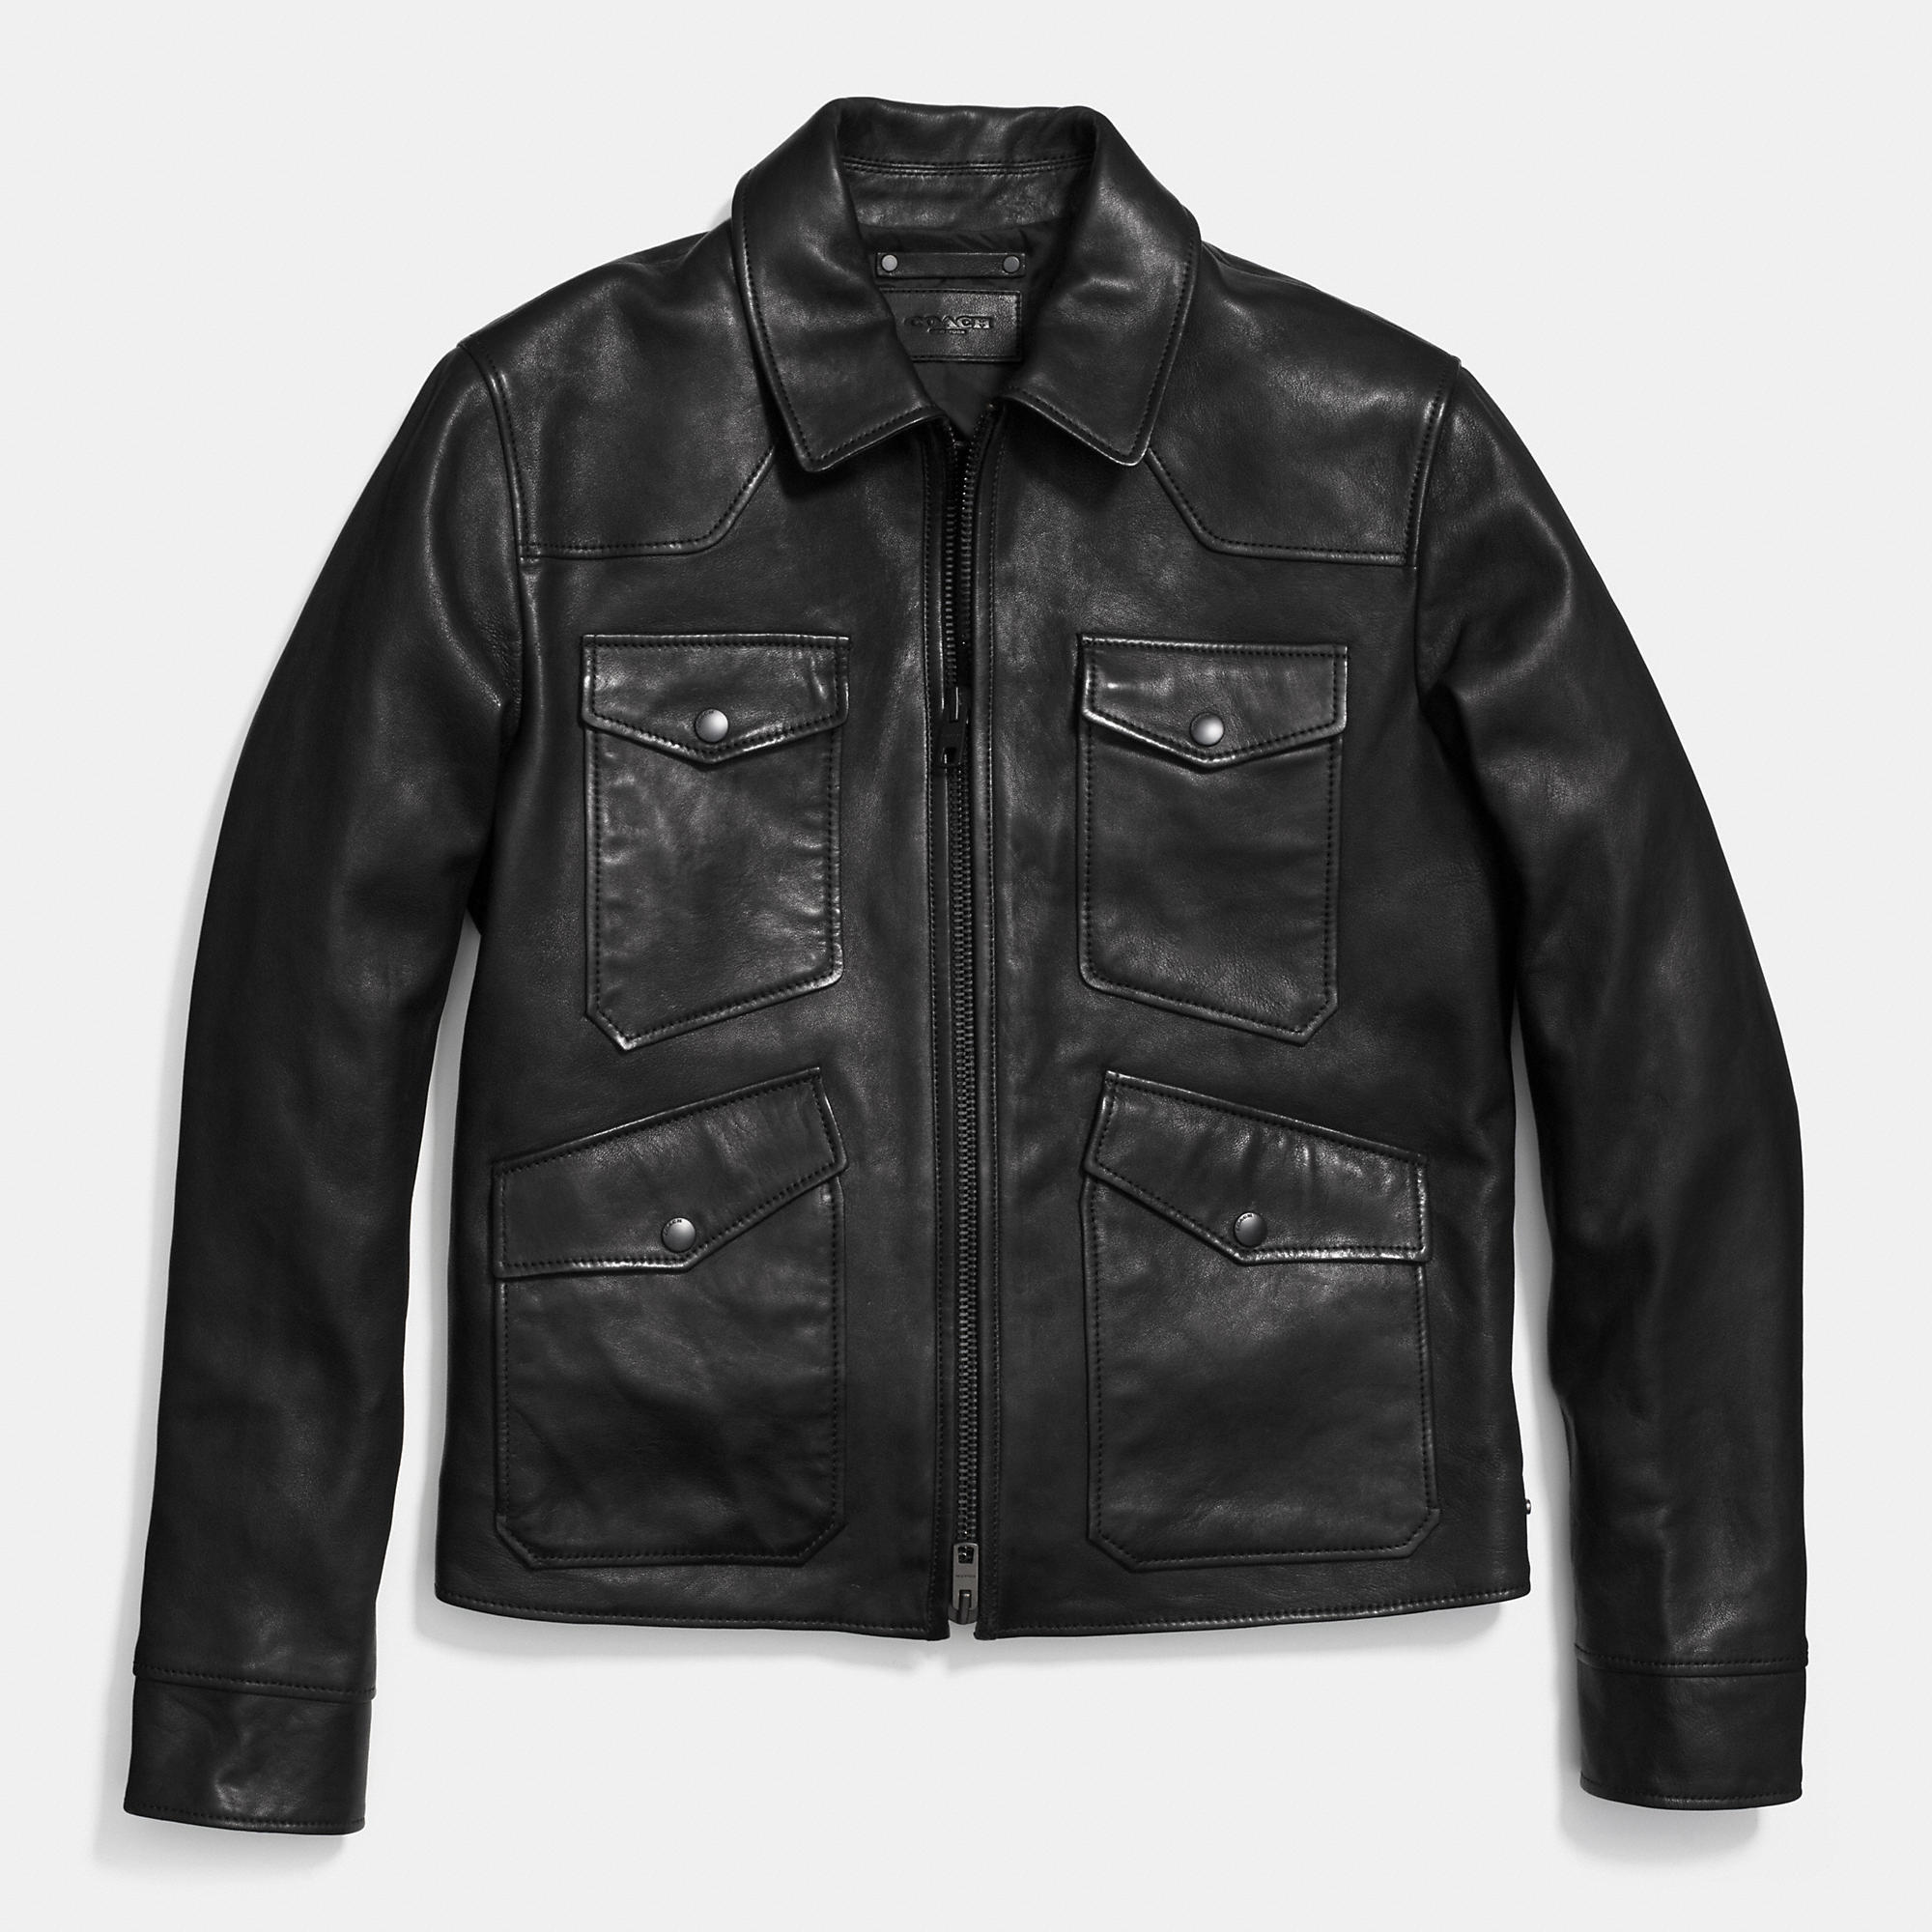 Coach Four Pocket Leather Jacket In Black For Men Lyst